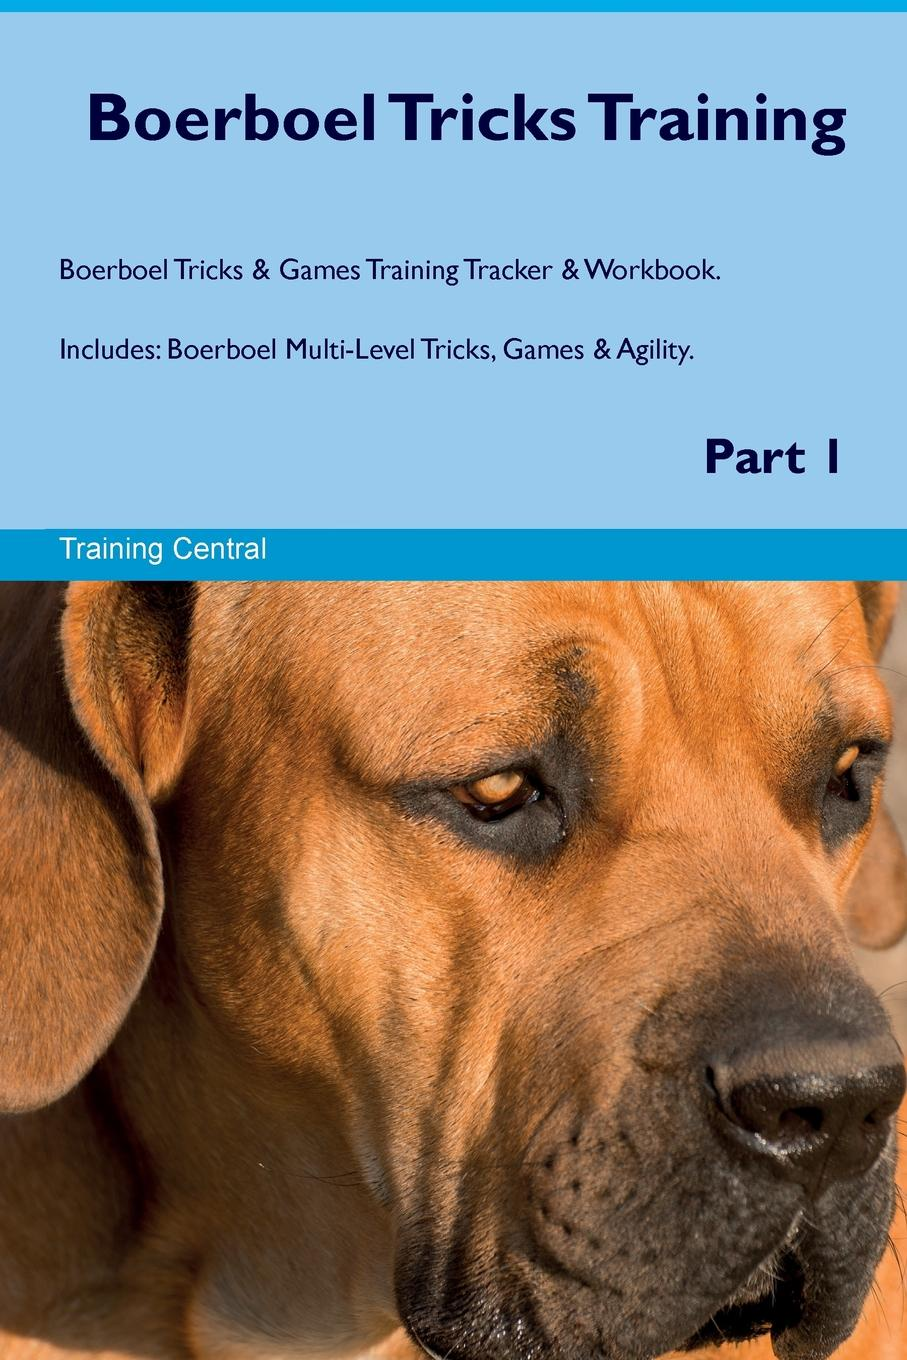 Фото - Training Central Boerboel Tricks Training Boerboel Tricks & Games Training Tracker & Workbook. Includes. Boerboel Multi-Level Tricks, Games & Agility. Part 1 harry holstone boerboel the boerboel dog owner s manual boerboel dog care personality grooming health costs and feeding all included